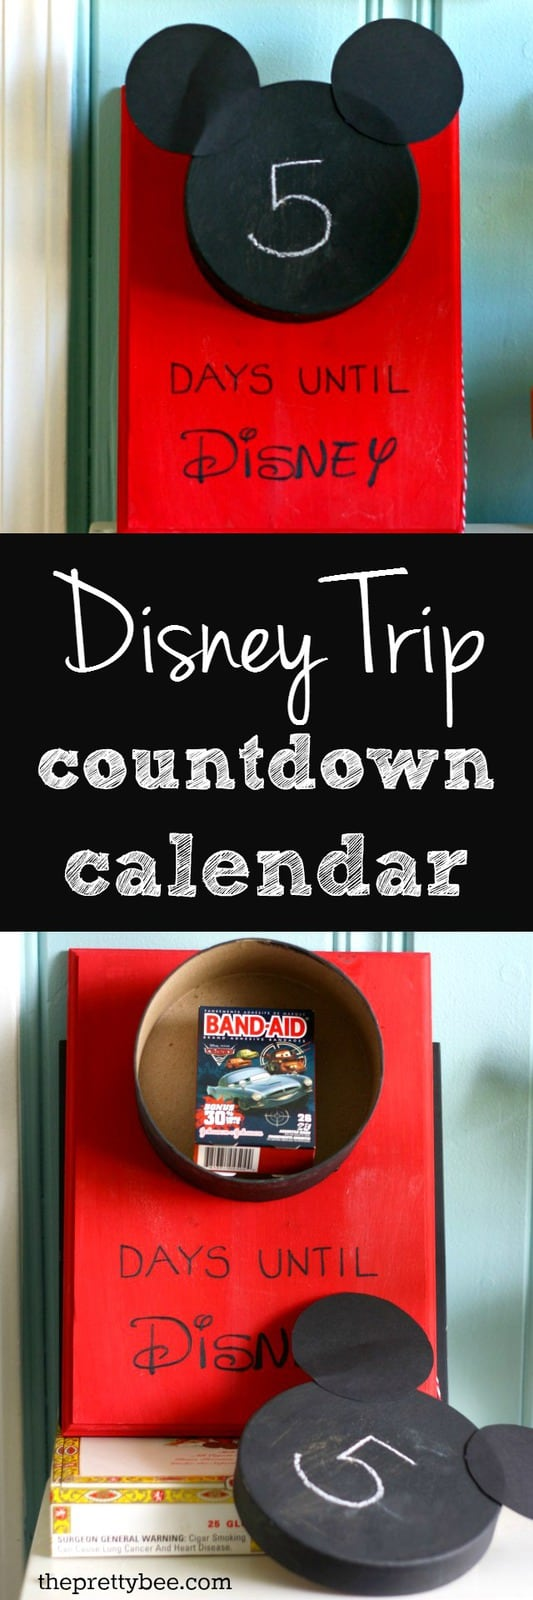 Count the days until your big Disney trip with this Disney World countdown calendar! An easy and fun way to look forward to your vacation. #Disney #vacation #travel #craft